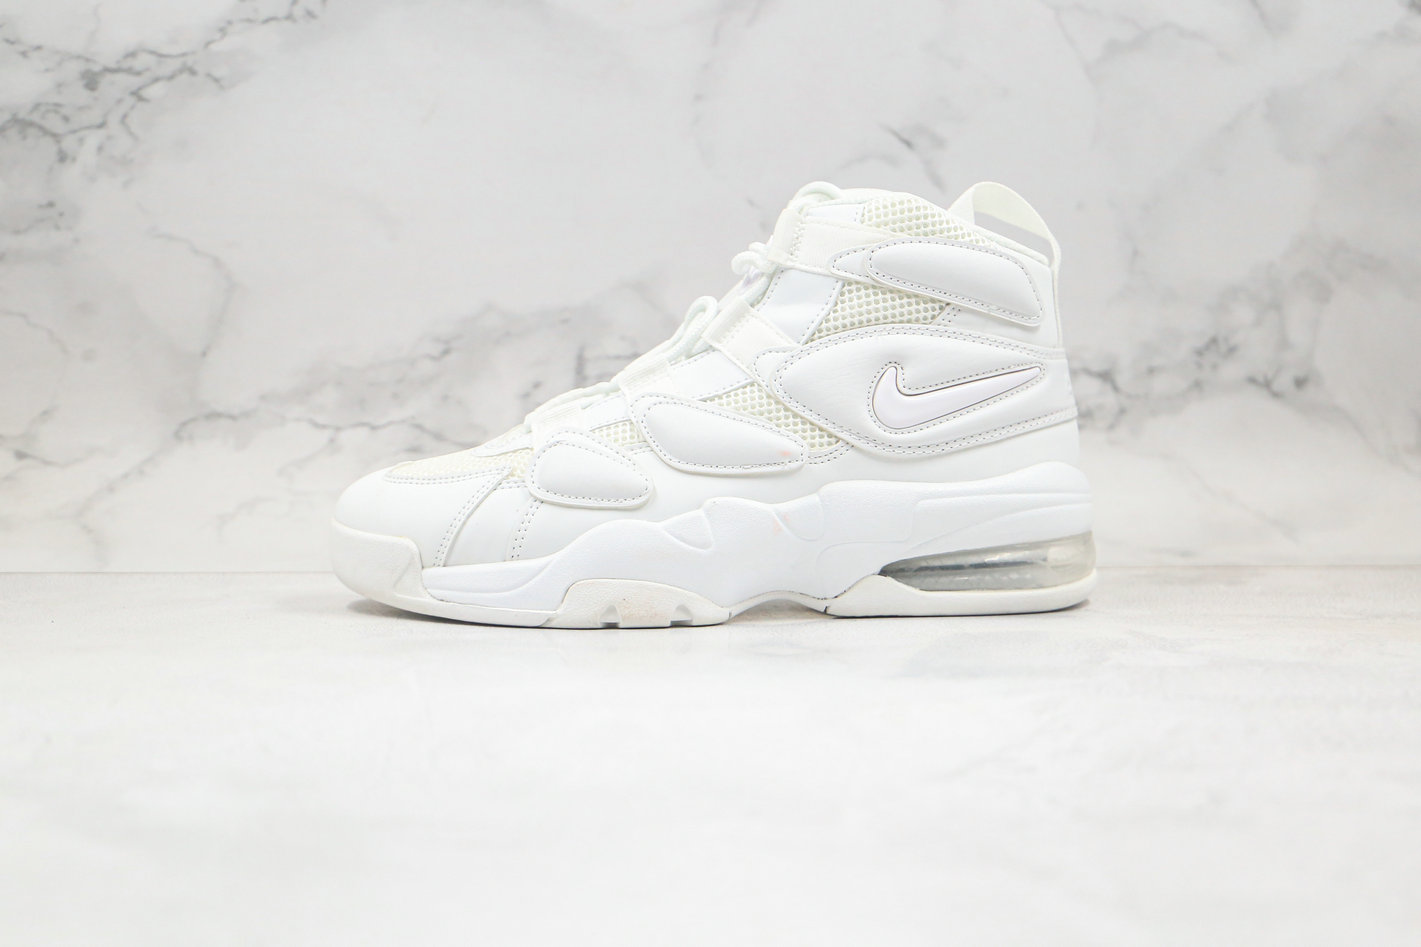 2020 Cheapest Nike Air Max Uptempo 2 Triple White 922934-100 - www.wholesaleflyknit.com